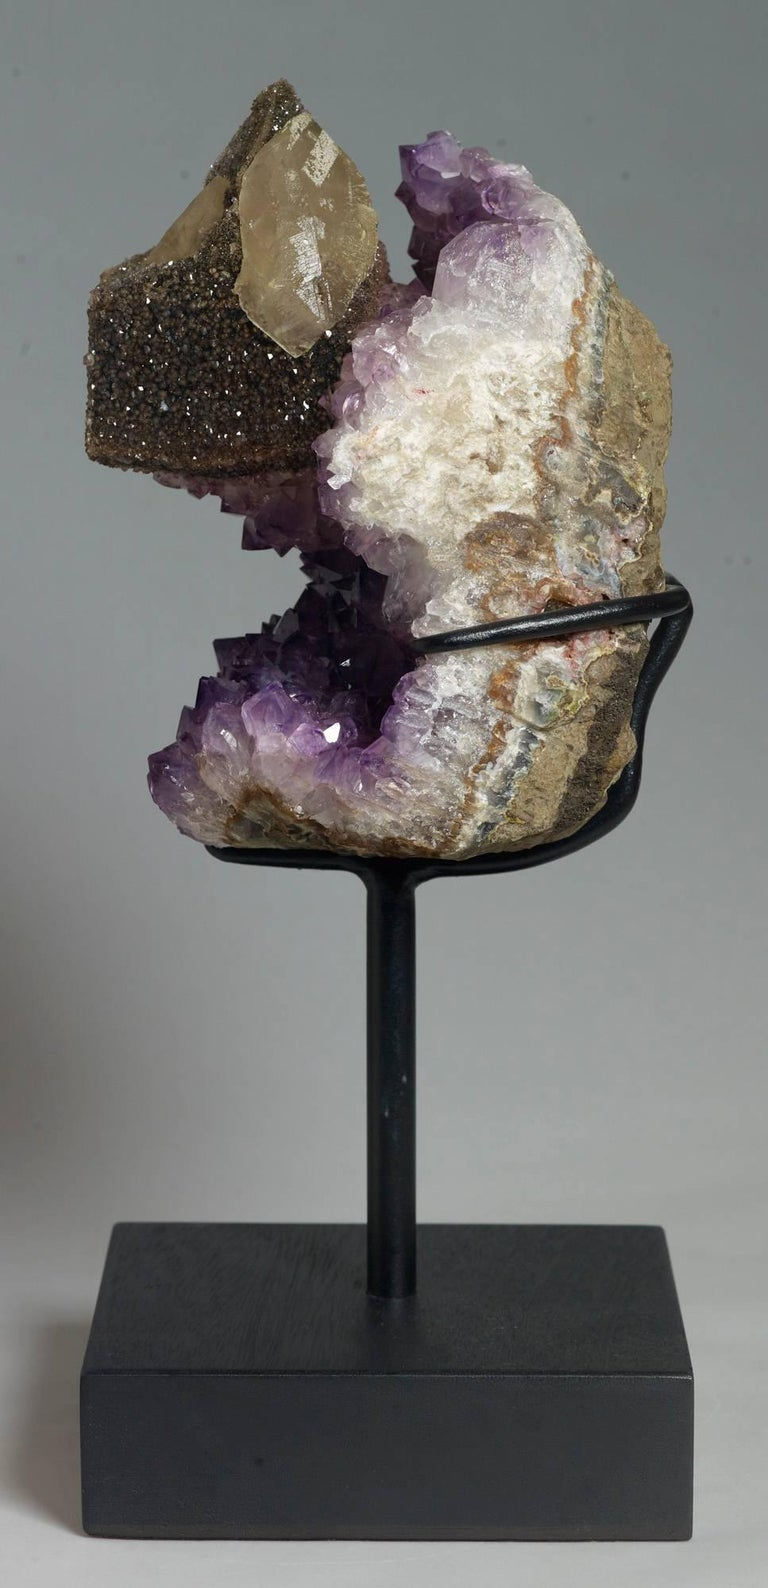 Calcite and Amethyst Crystals For Sale 2